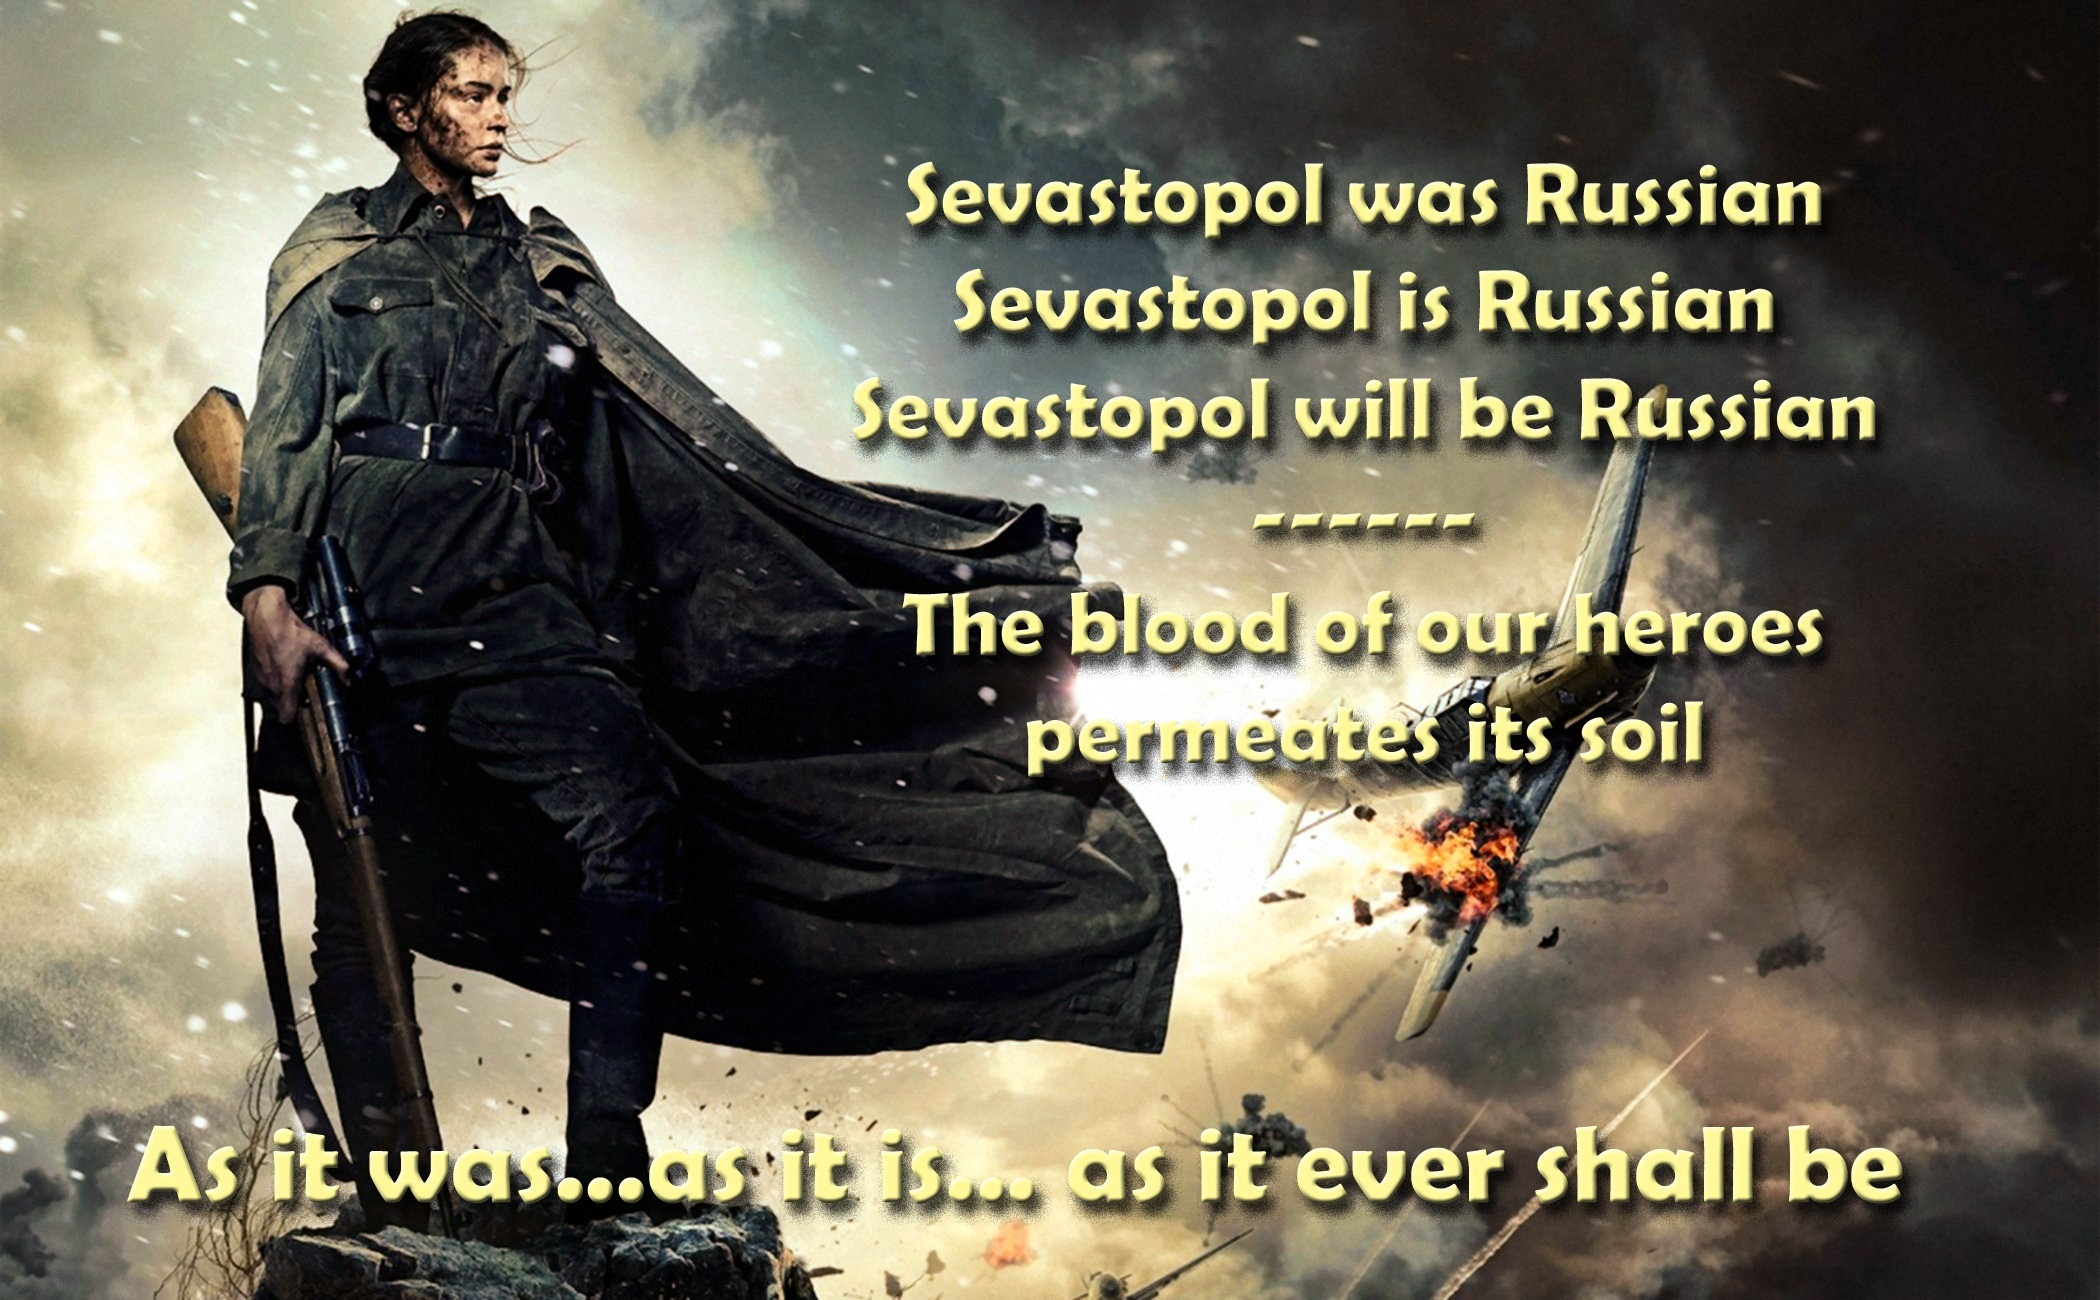 00 russia sevastopol will be russian 301215